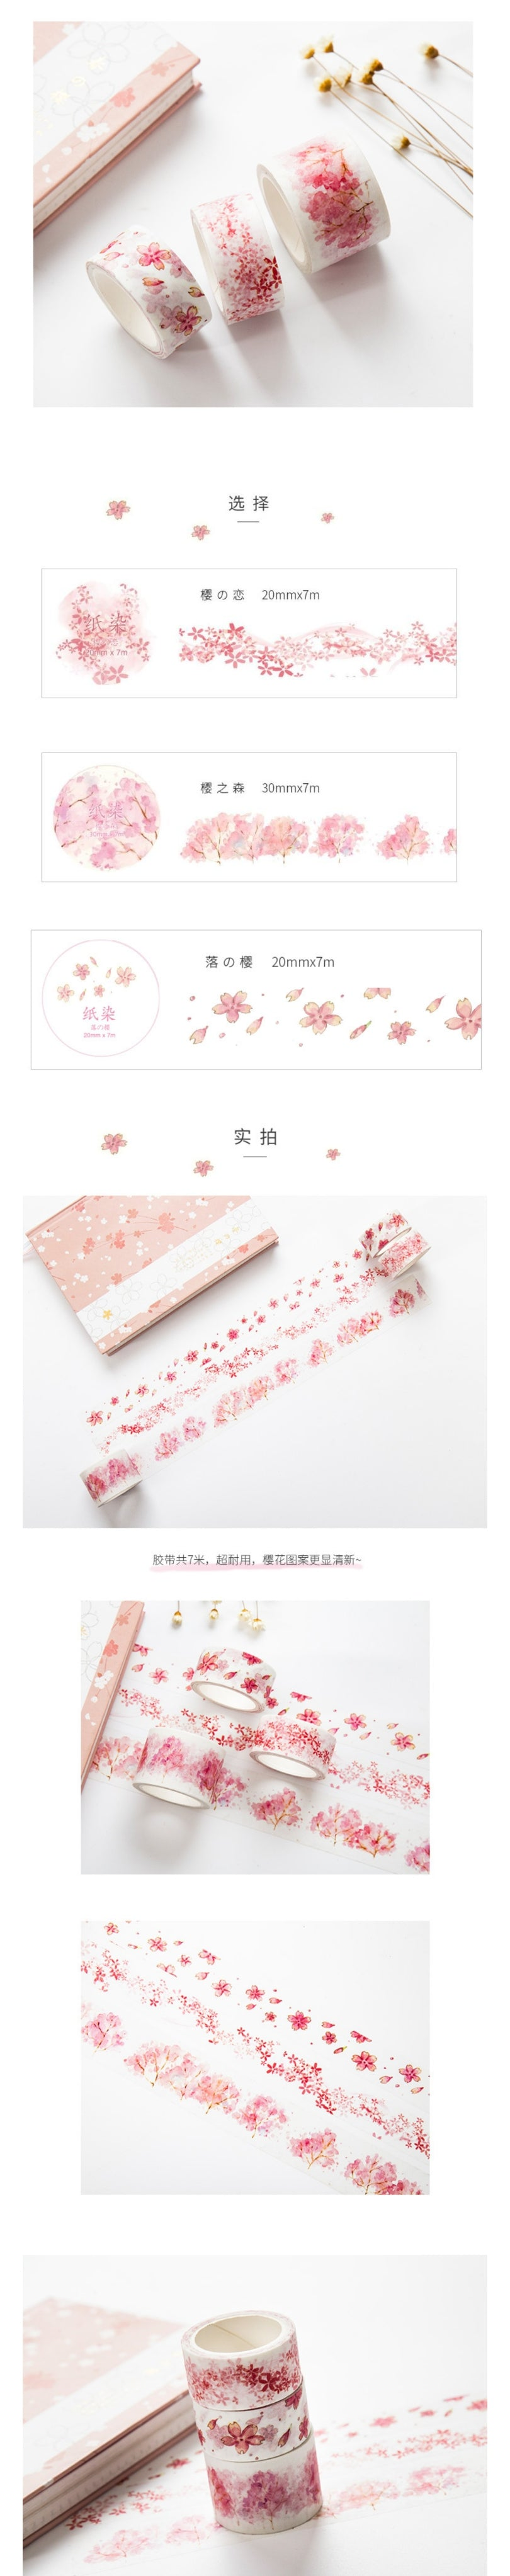 Watercolor Sakura Washi Tape Set